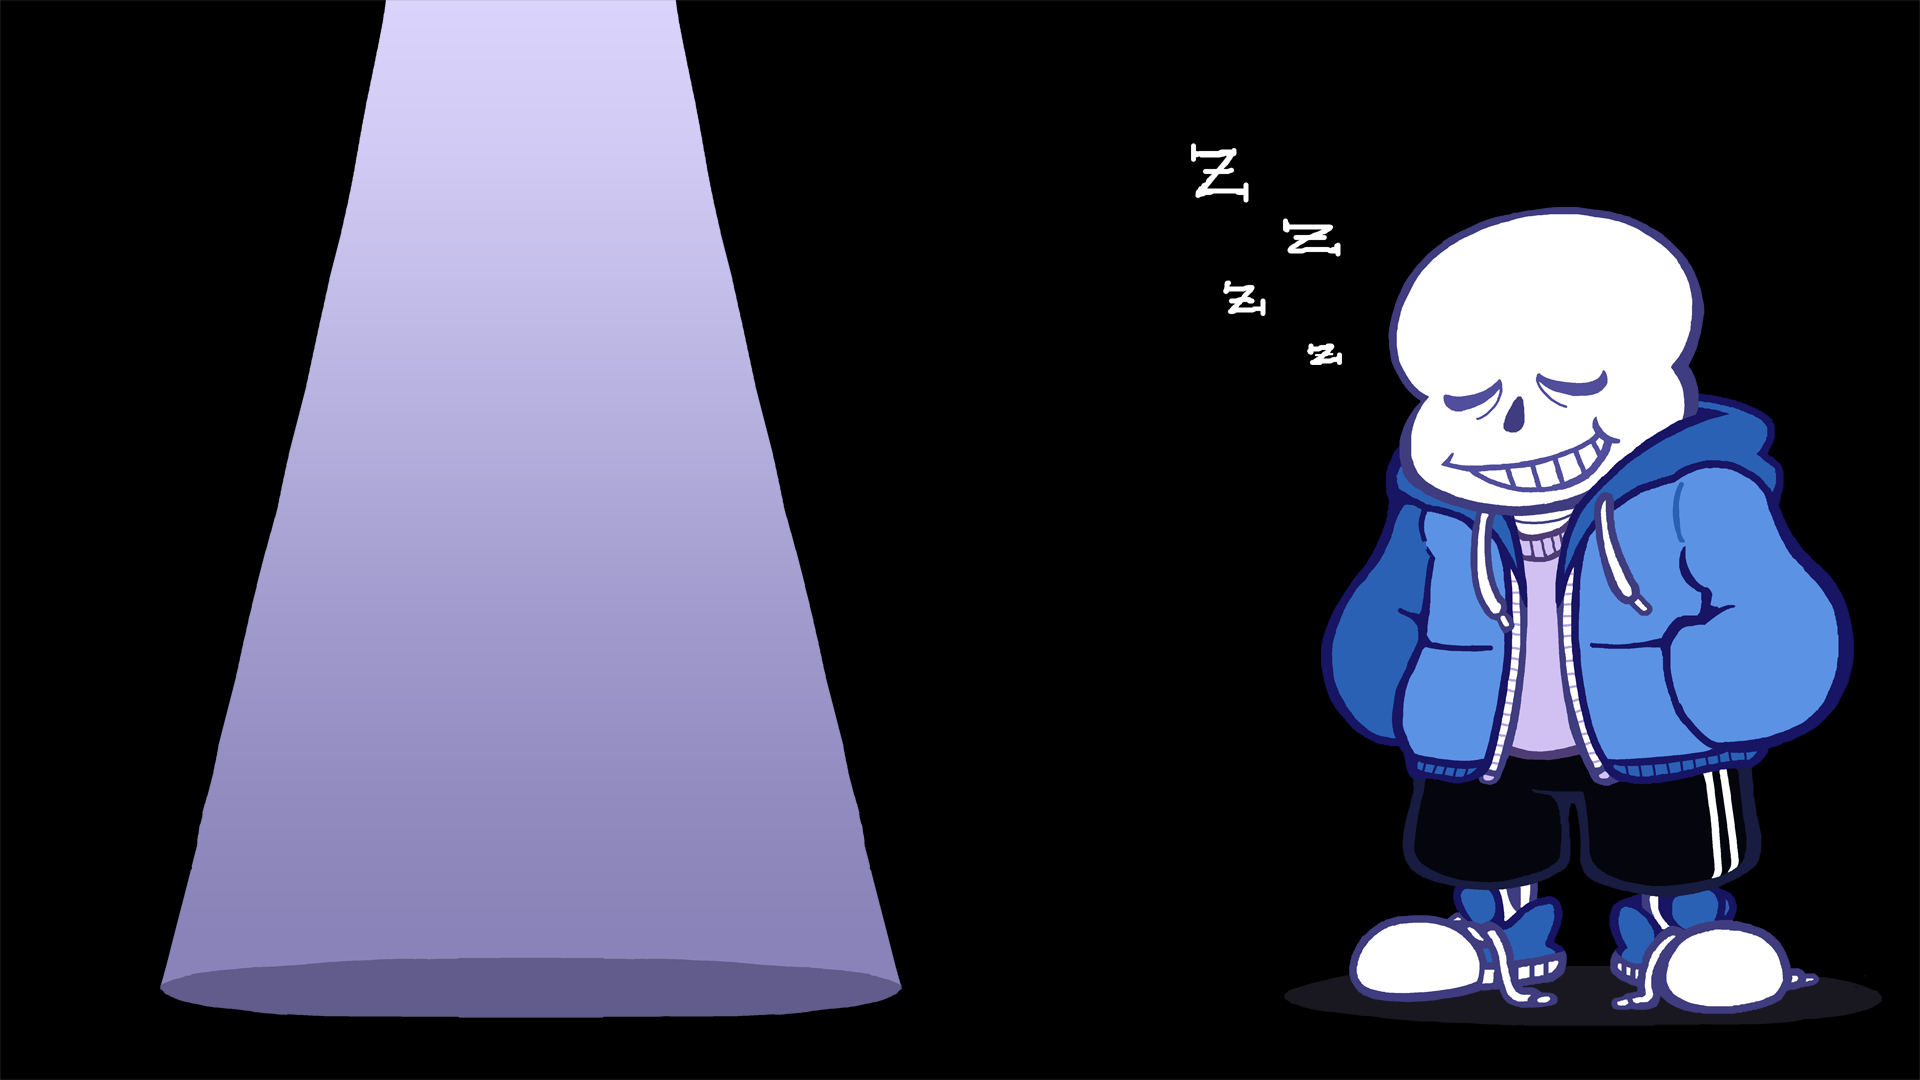 Undertale Wallpaper Thread Undertale Forum StarmenNet 1920x1080